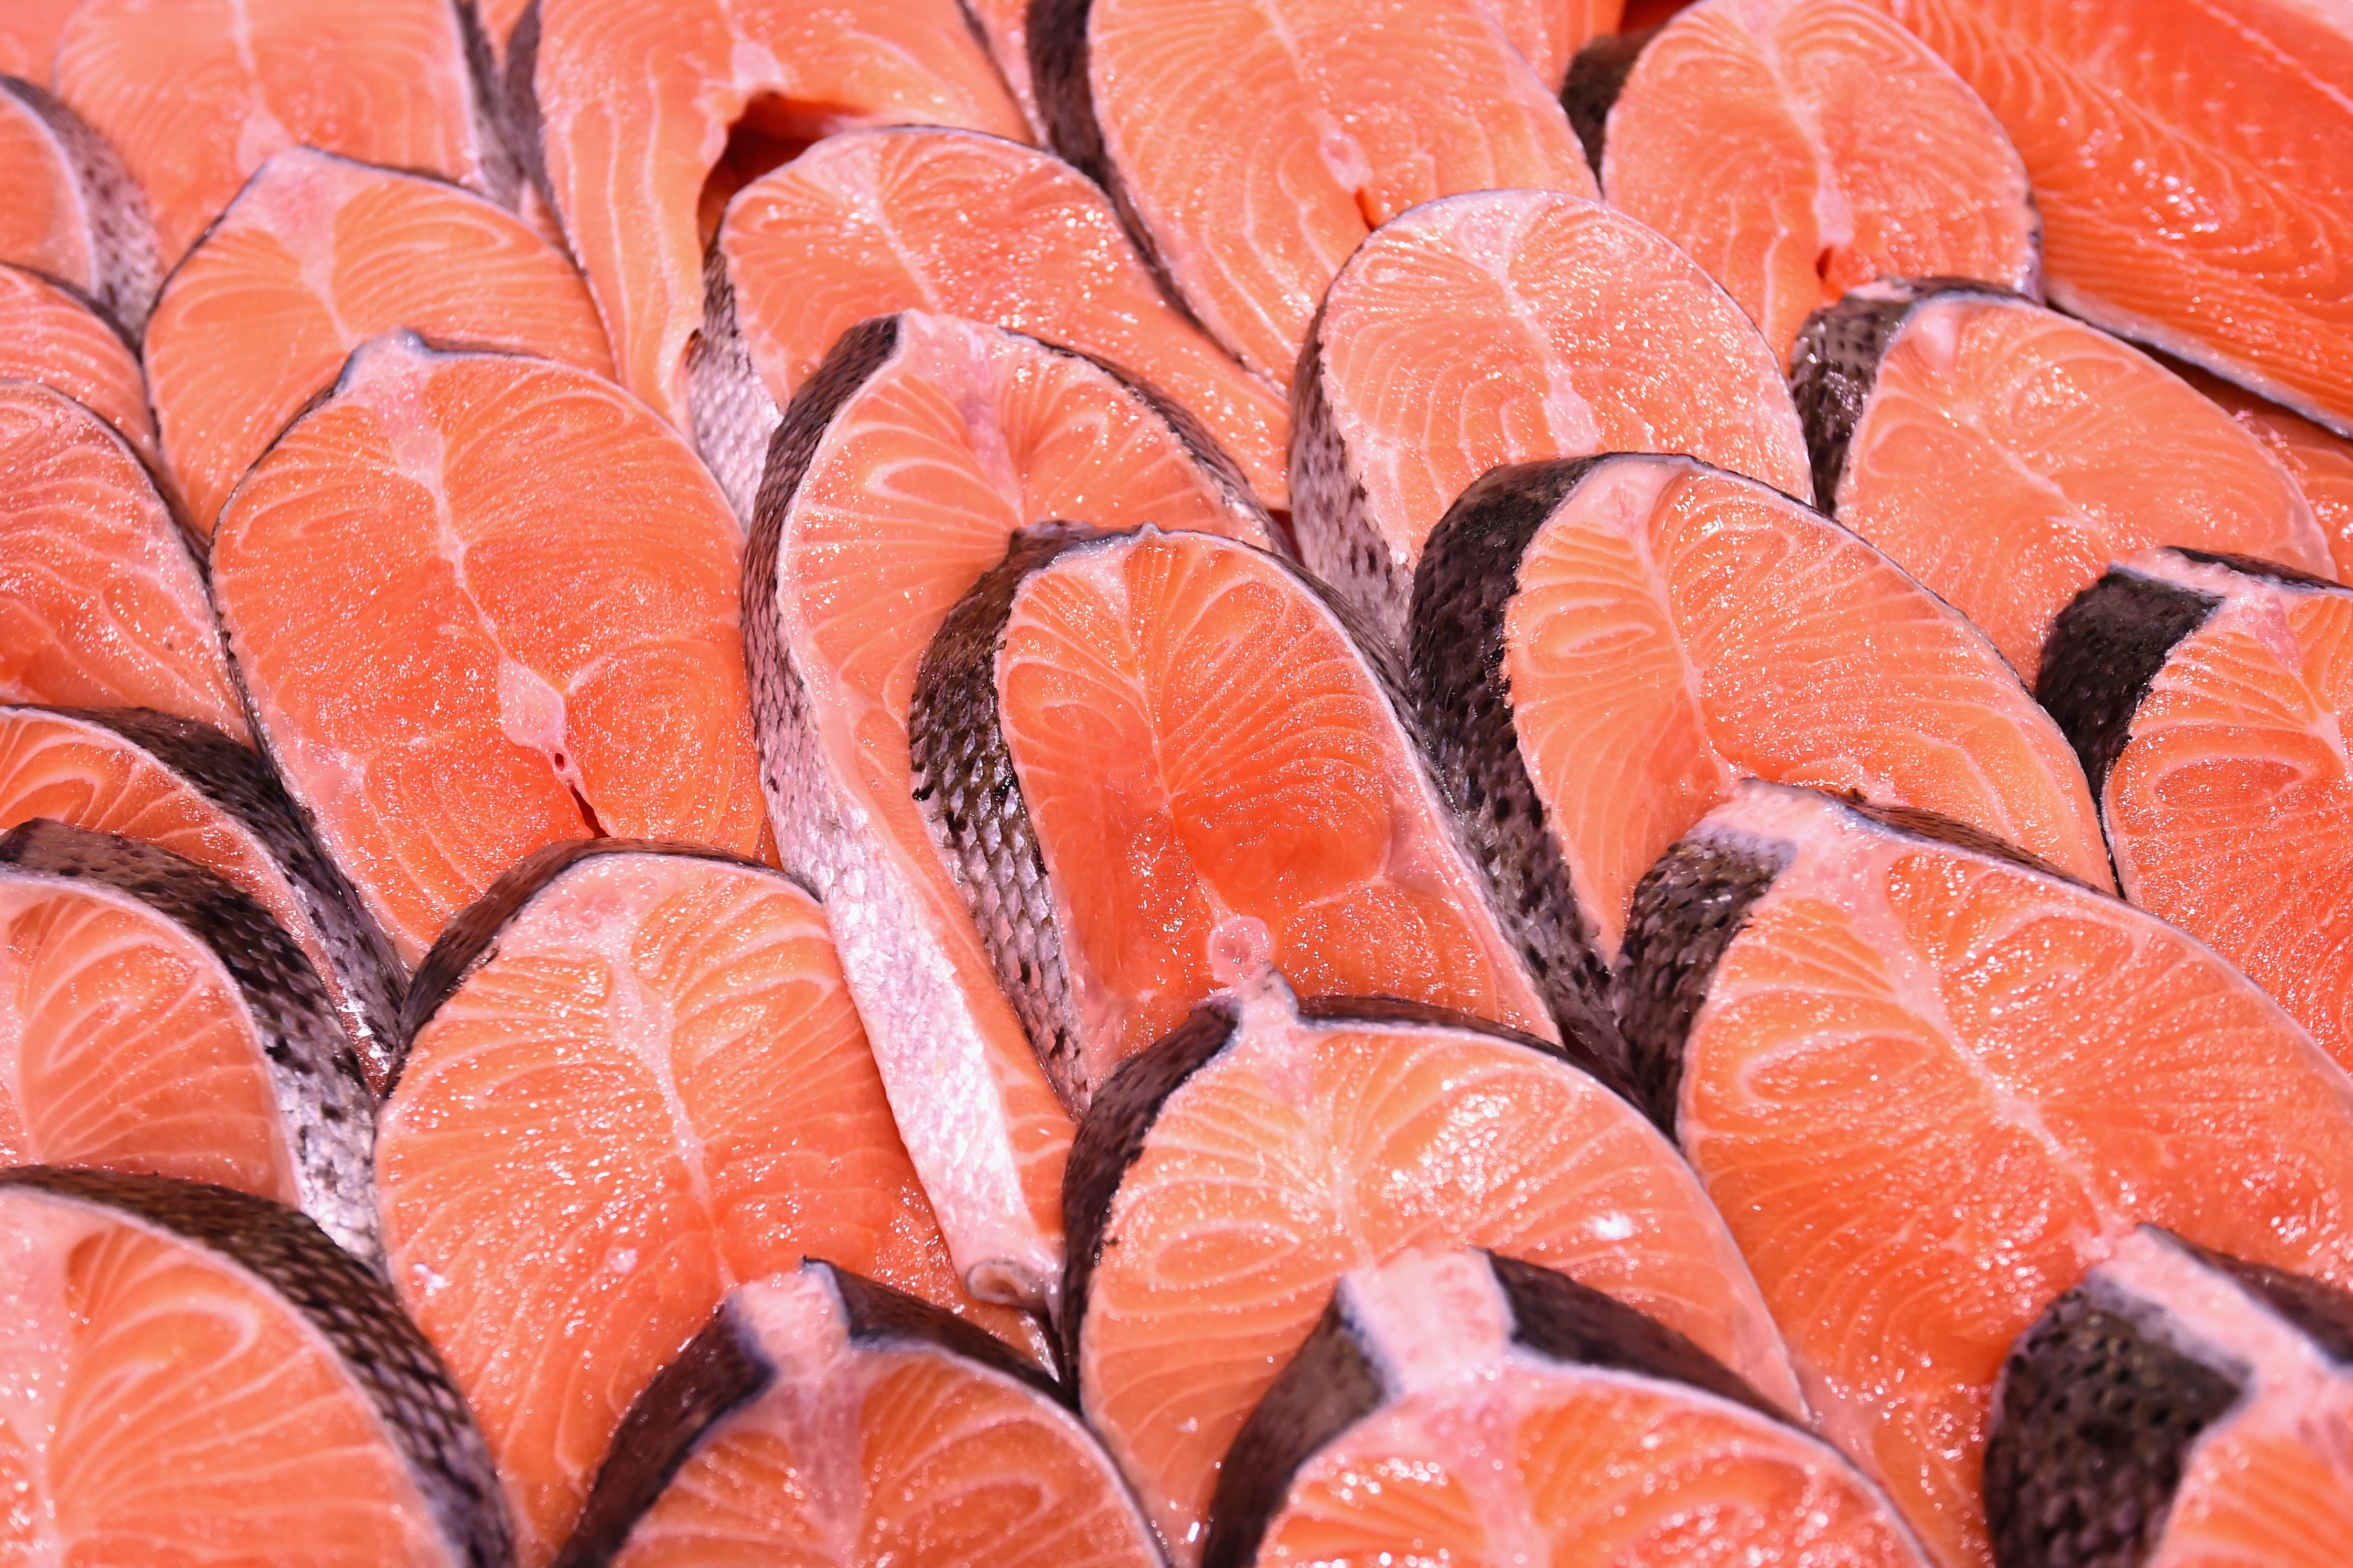 Salmon Is Getting More Expensive - The Price of Salmon is Expected ...